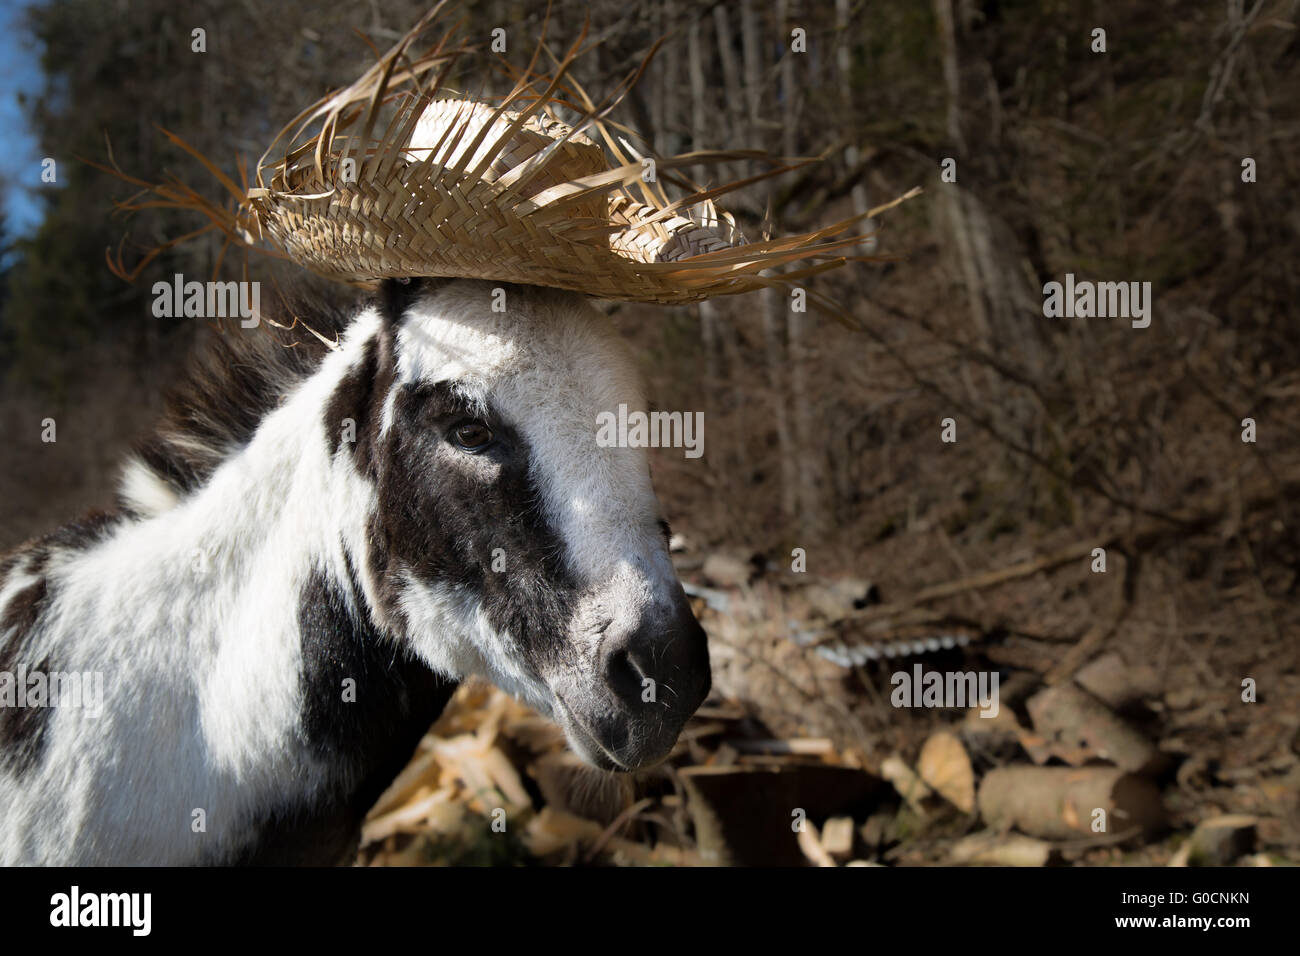 Donkey with Summer Hat - Stock Image